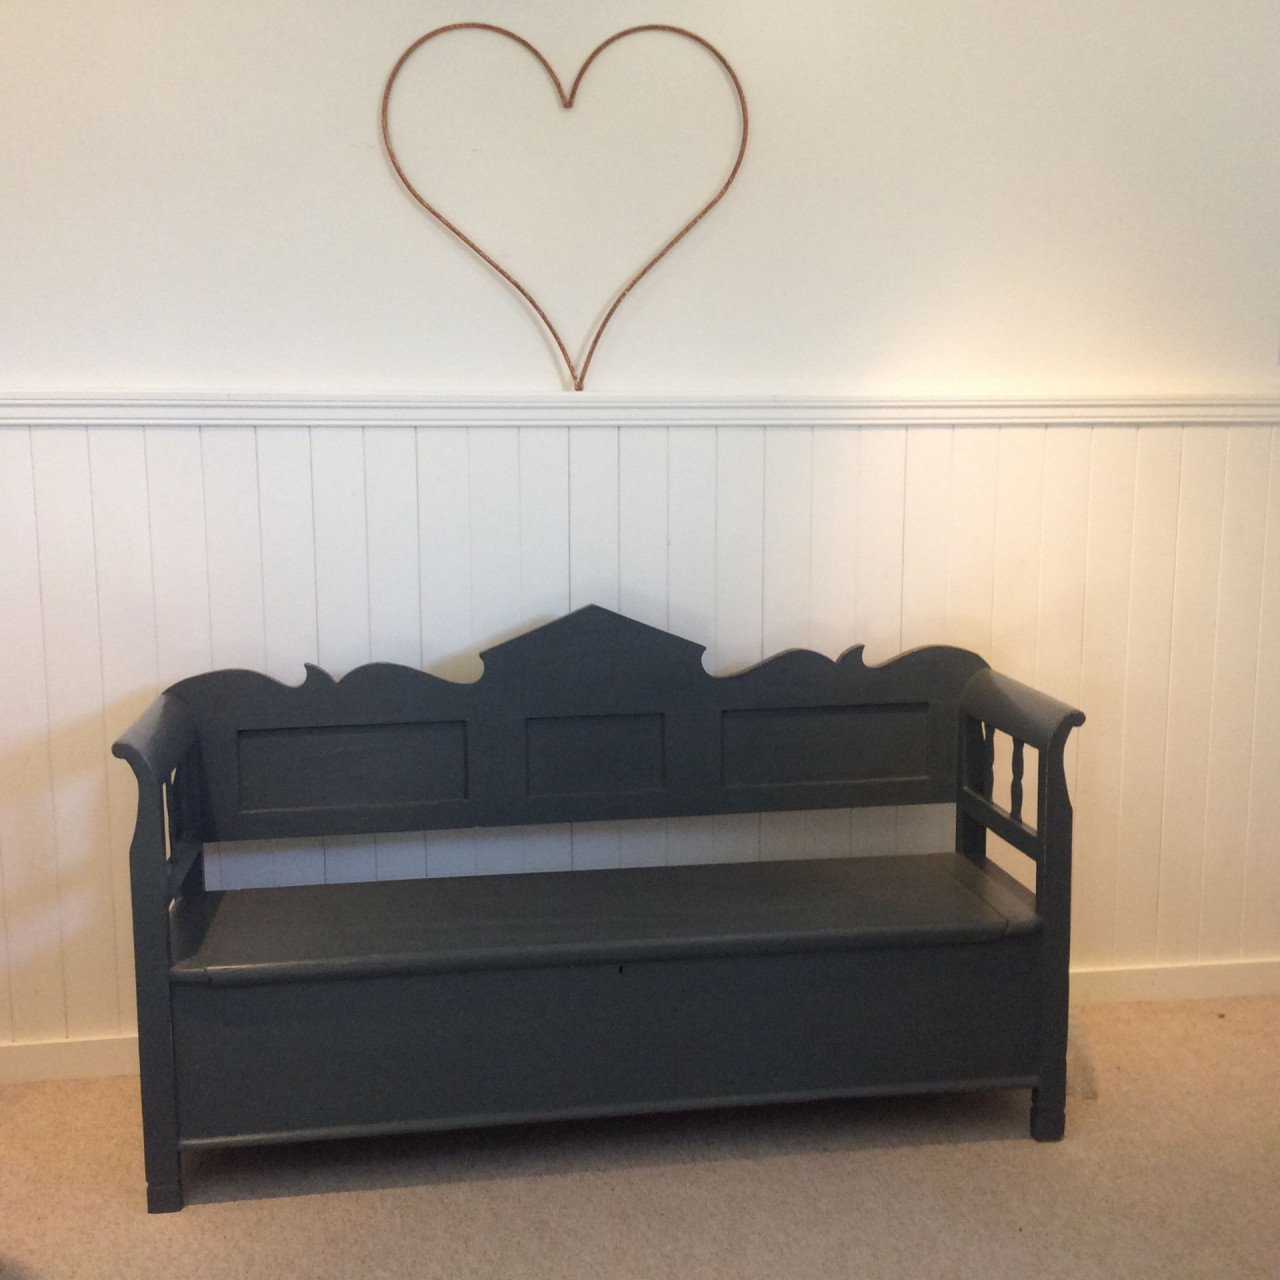 Fabric Bench for Bedroom Awesome Wooden Storage Bench — Procura Home Blog